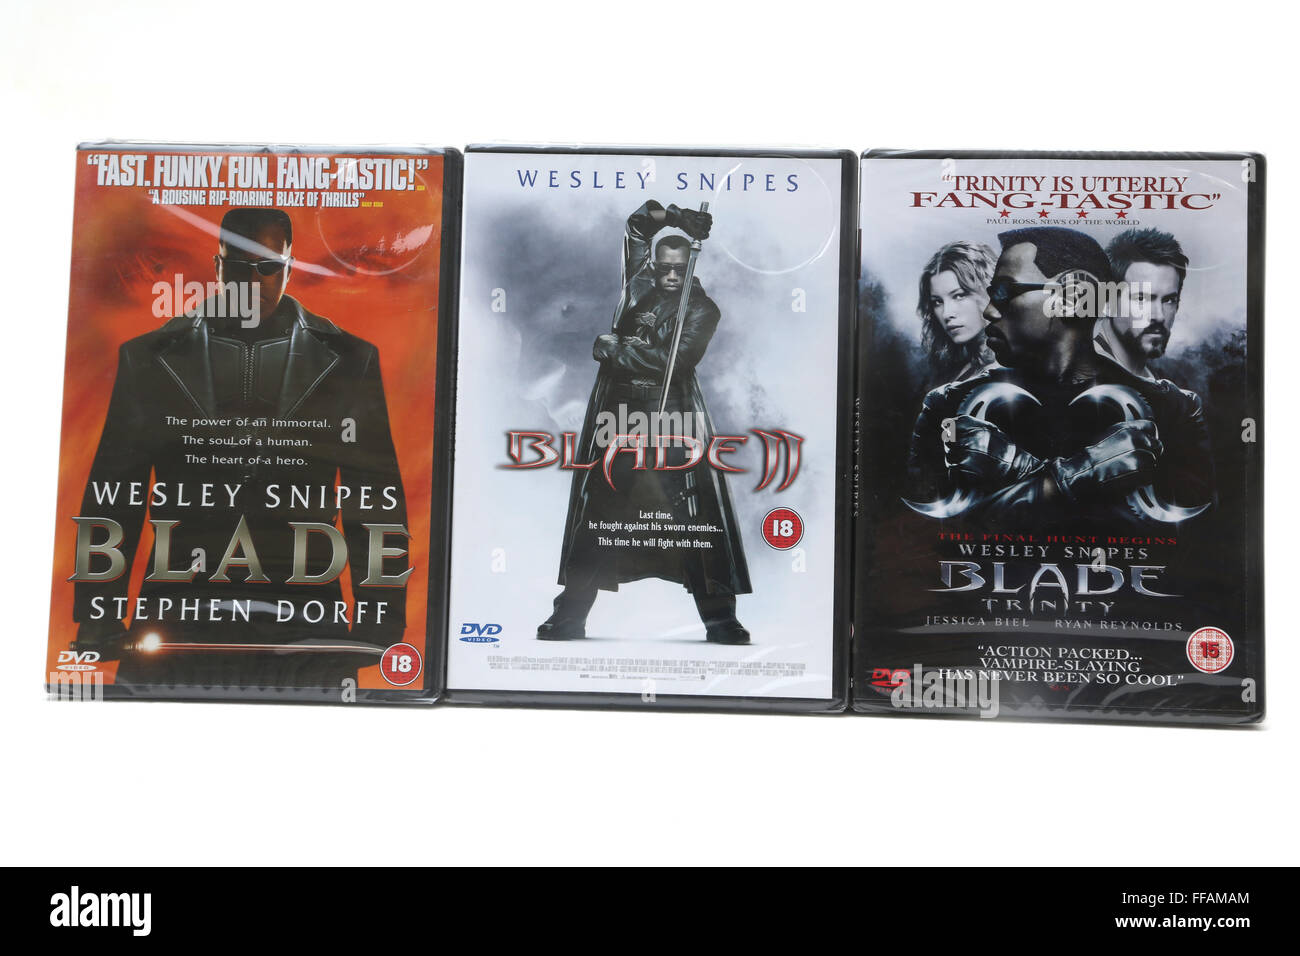 Blade, Blade II And Blade Trinity DVDS - Stock Image